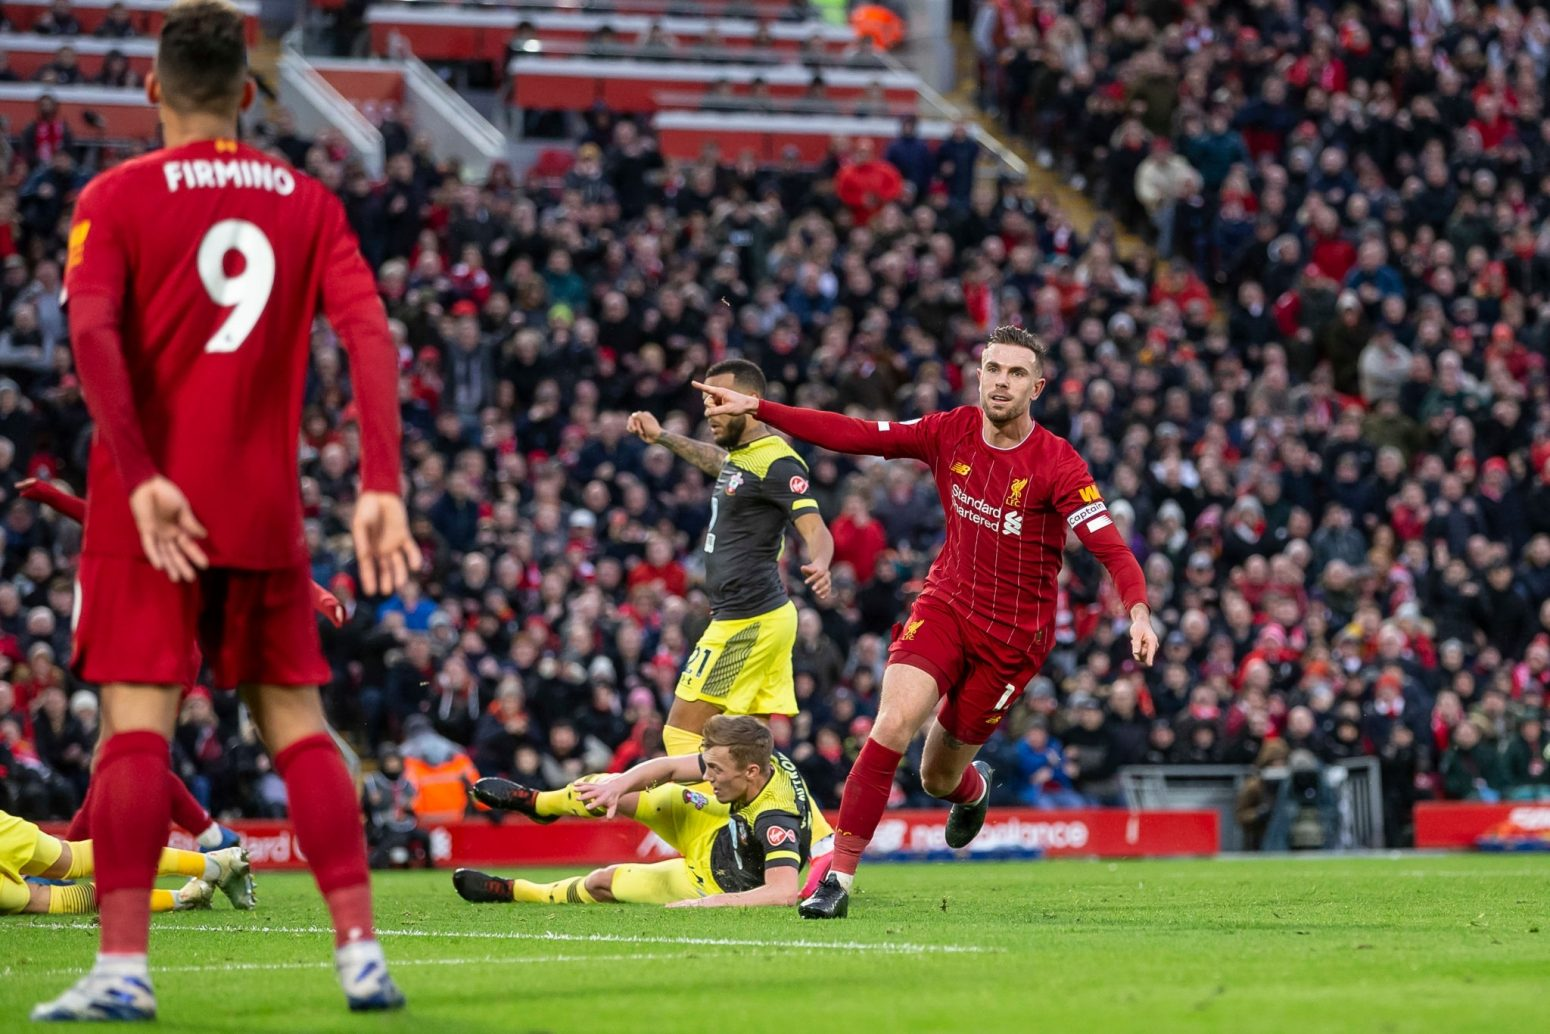 Liverpool 4-0 Southampton – Highlights and Goals (Video)